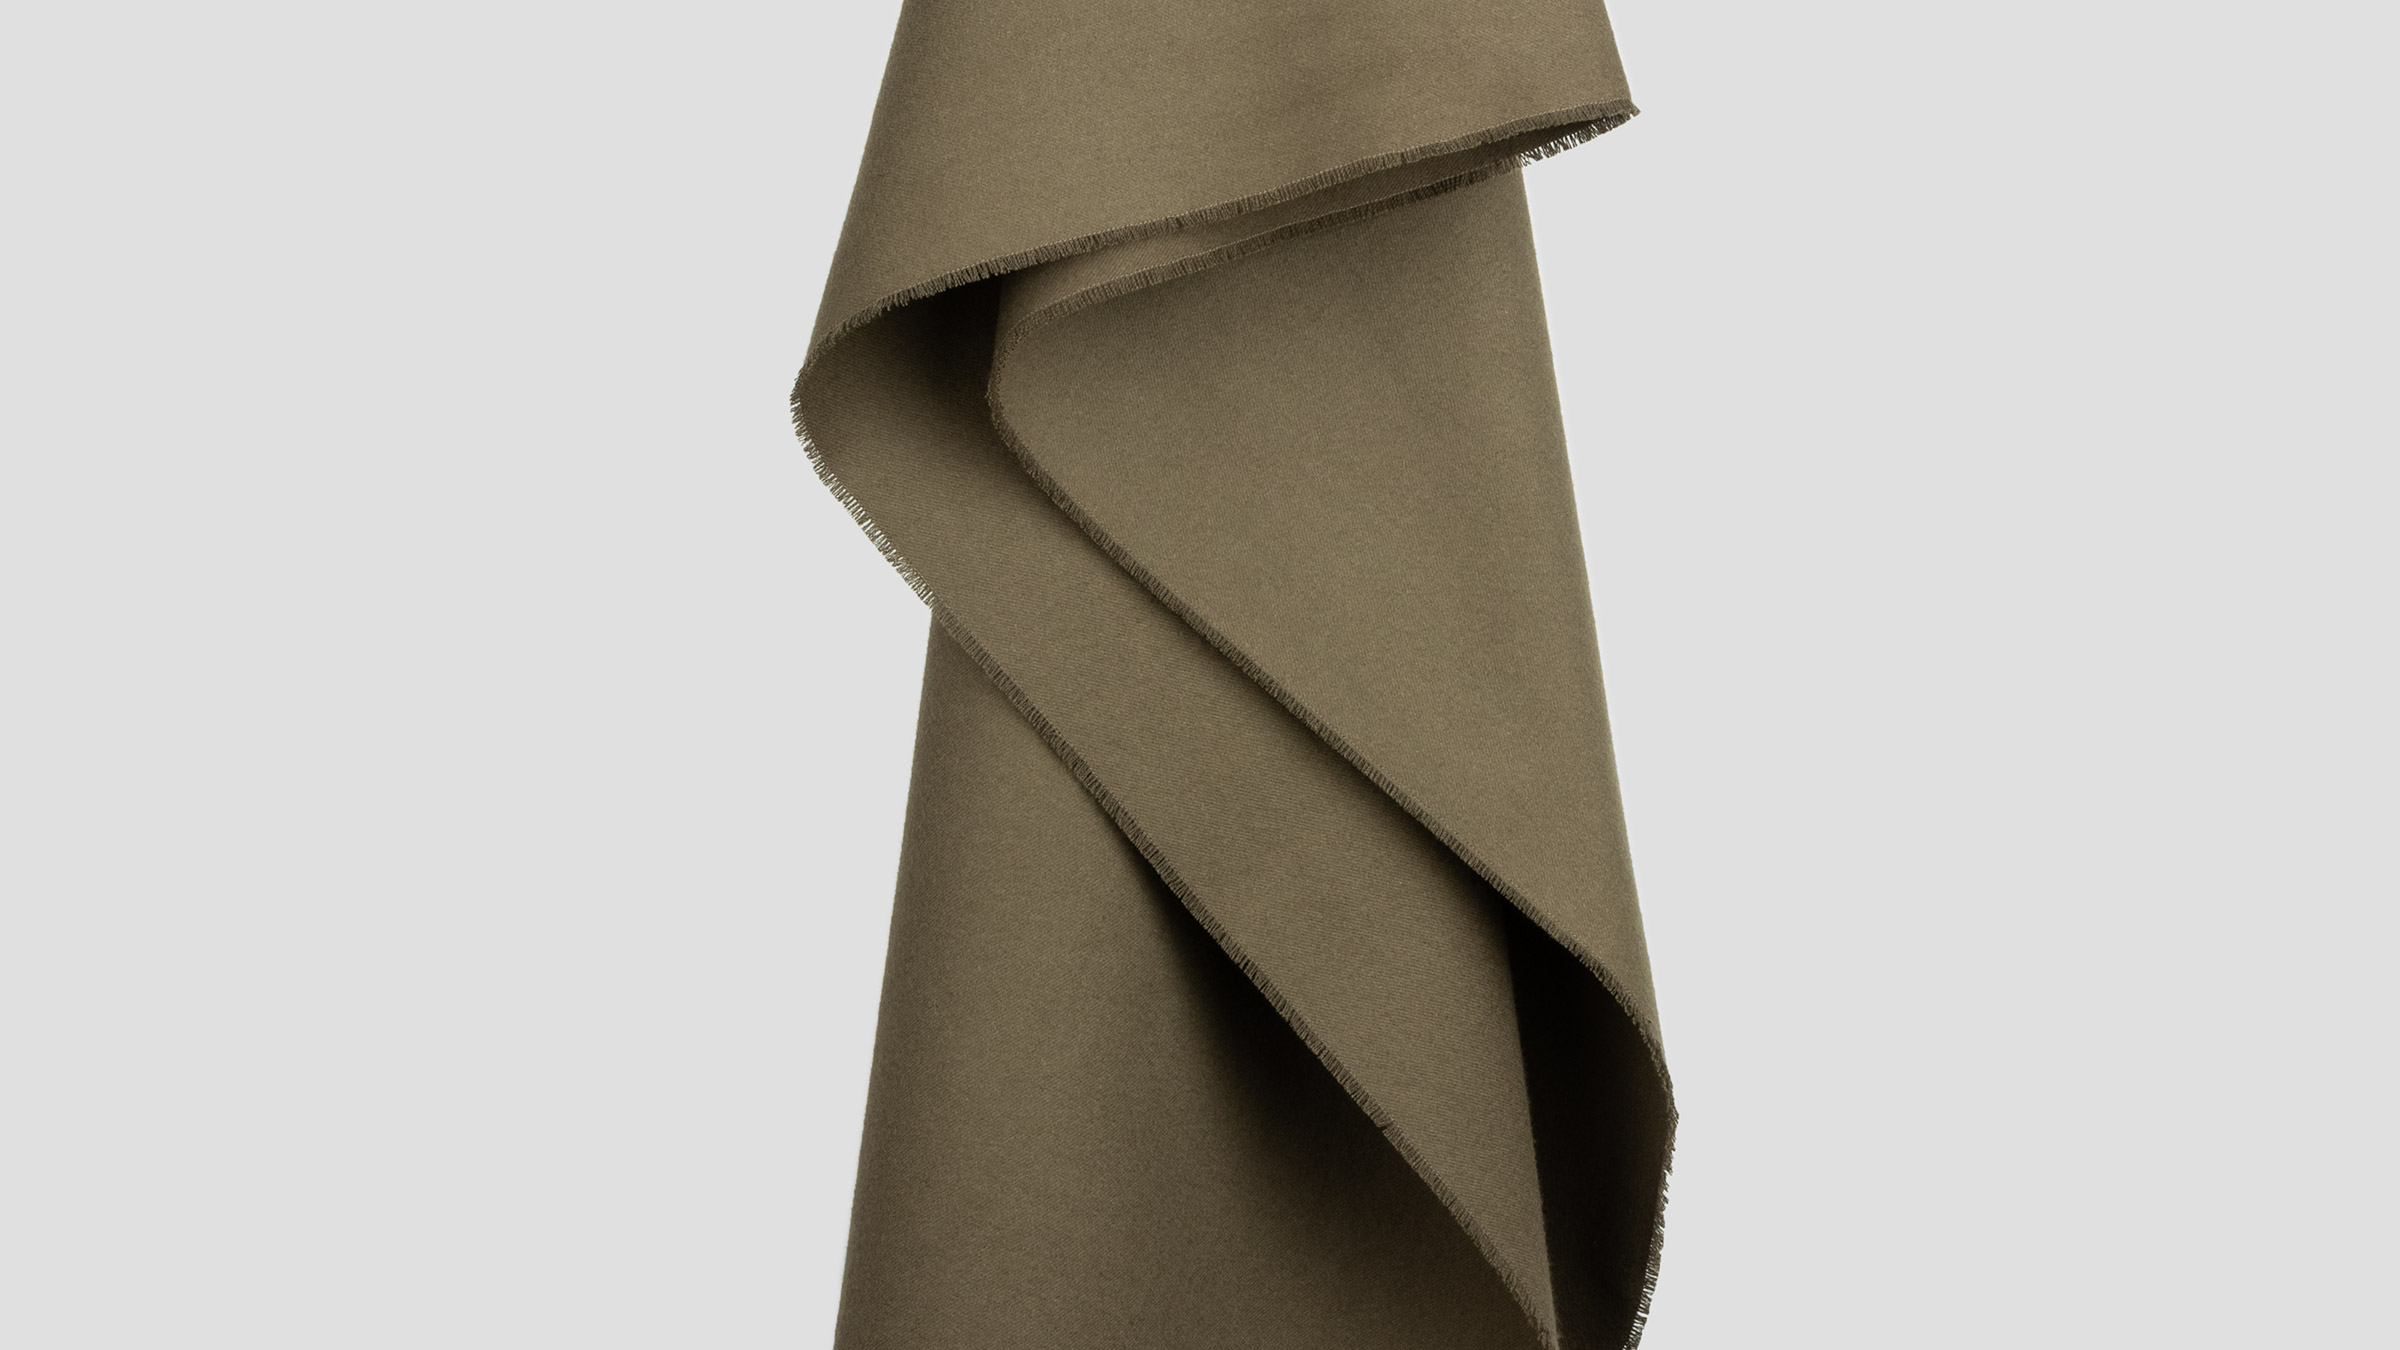 niels-heineman-filip-scarf-burnt-olive-materials